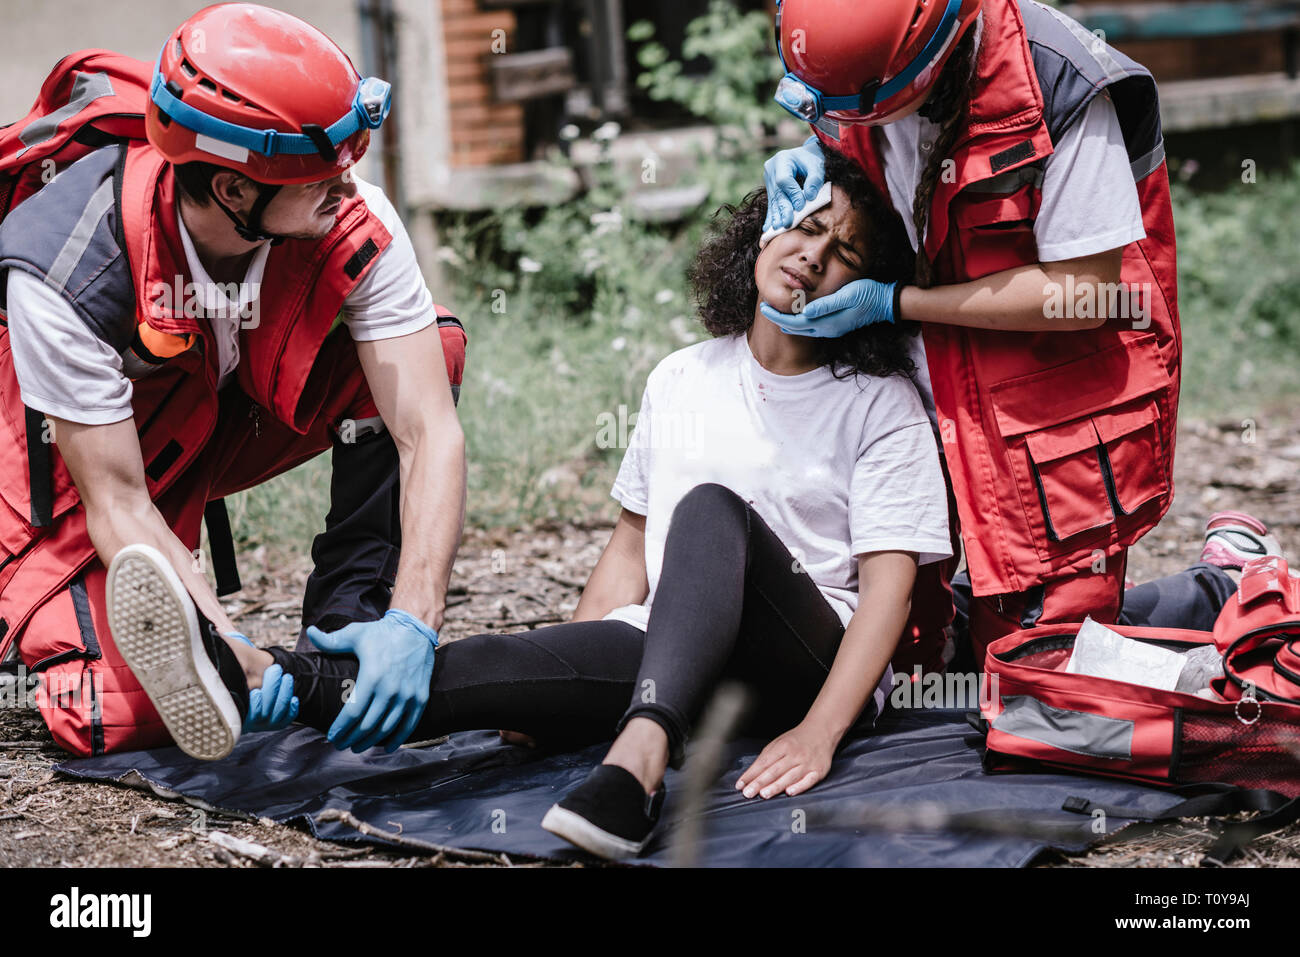 Disaster relief, rescue team helping injured woman. - Stock Image